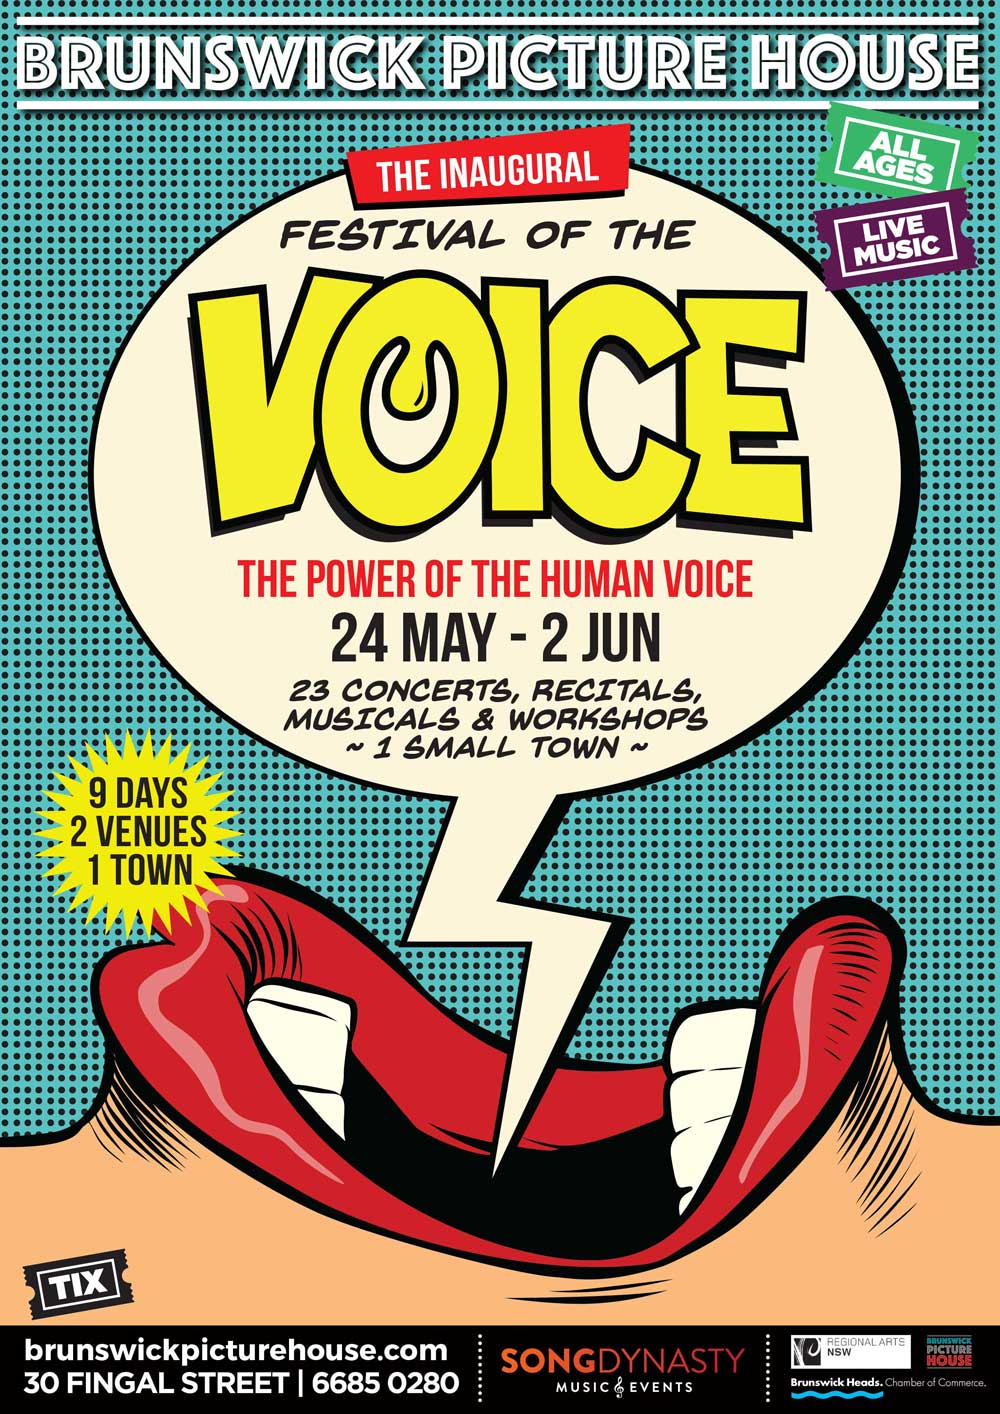 Festival of the Voice Brusnwick Heads